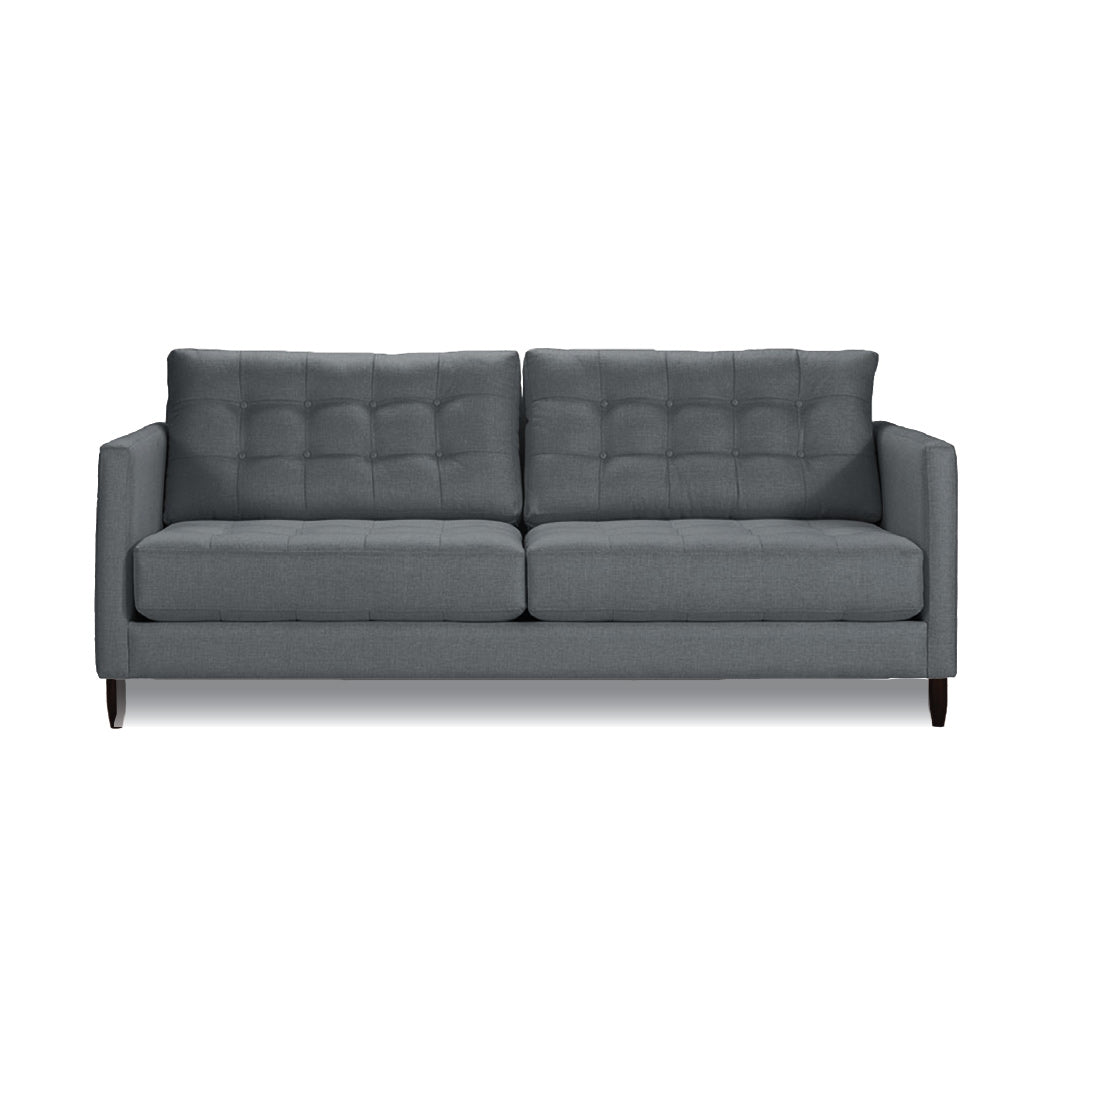 "James 70"" Apartment Sofa -  Sole  Grey"